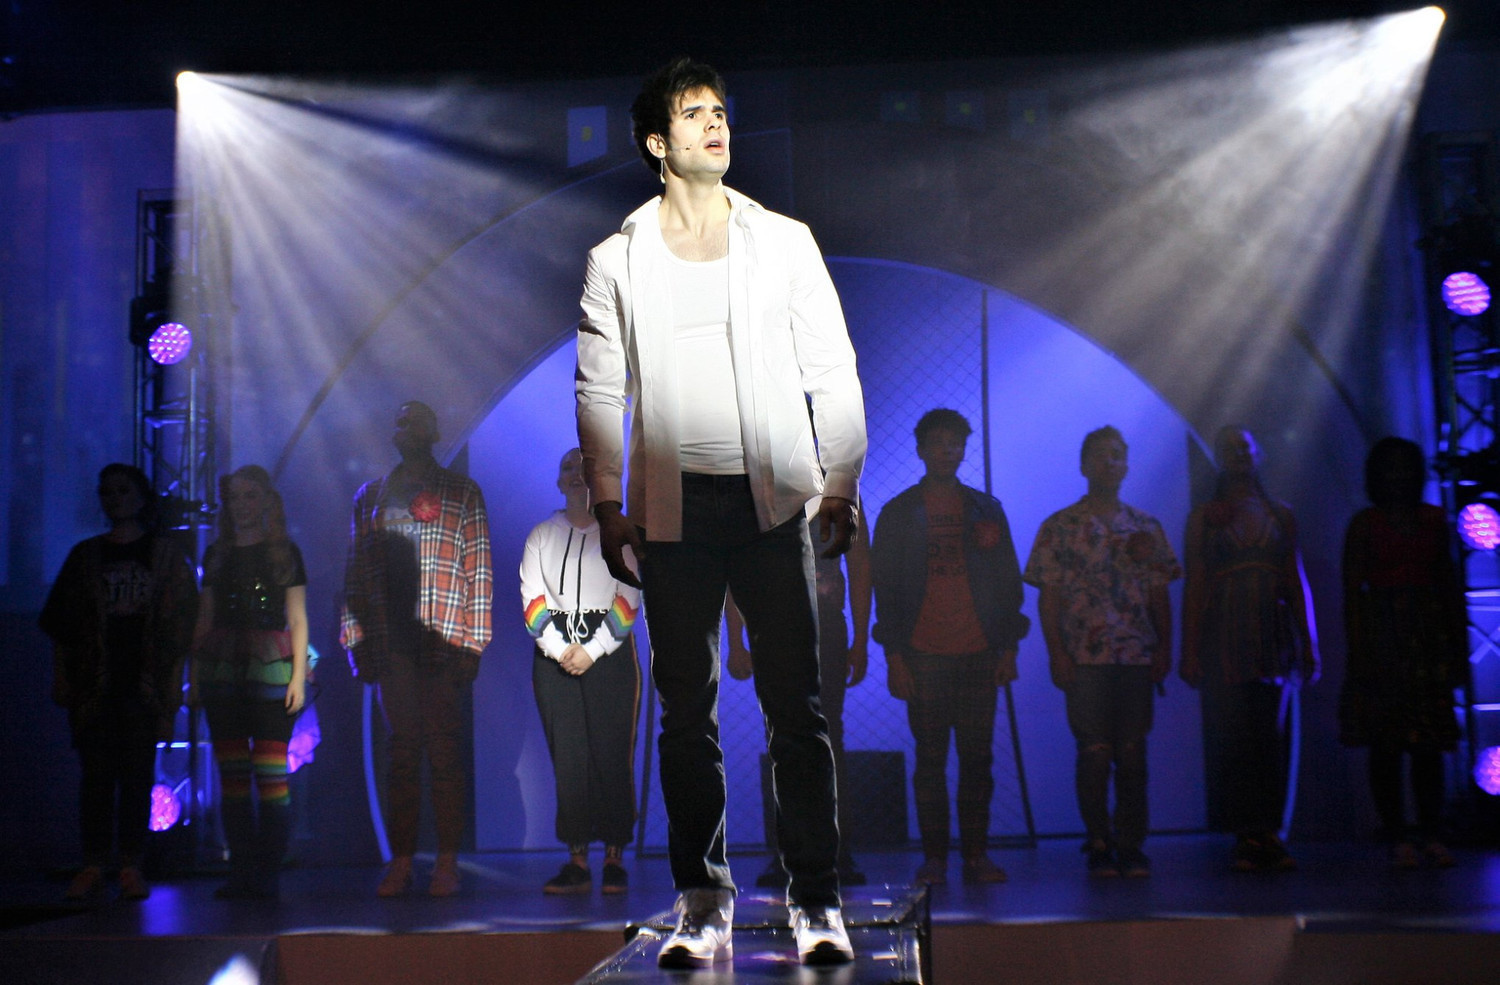 BWW Review: GODSPELL at Alhambra Theatre And Dining